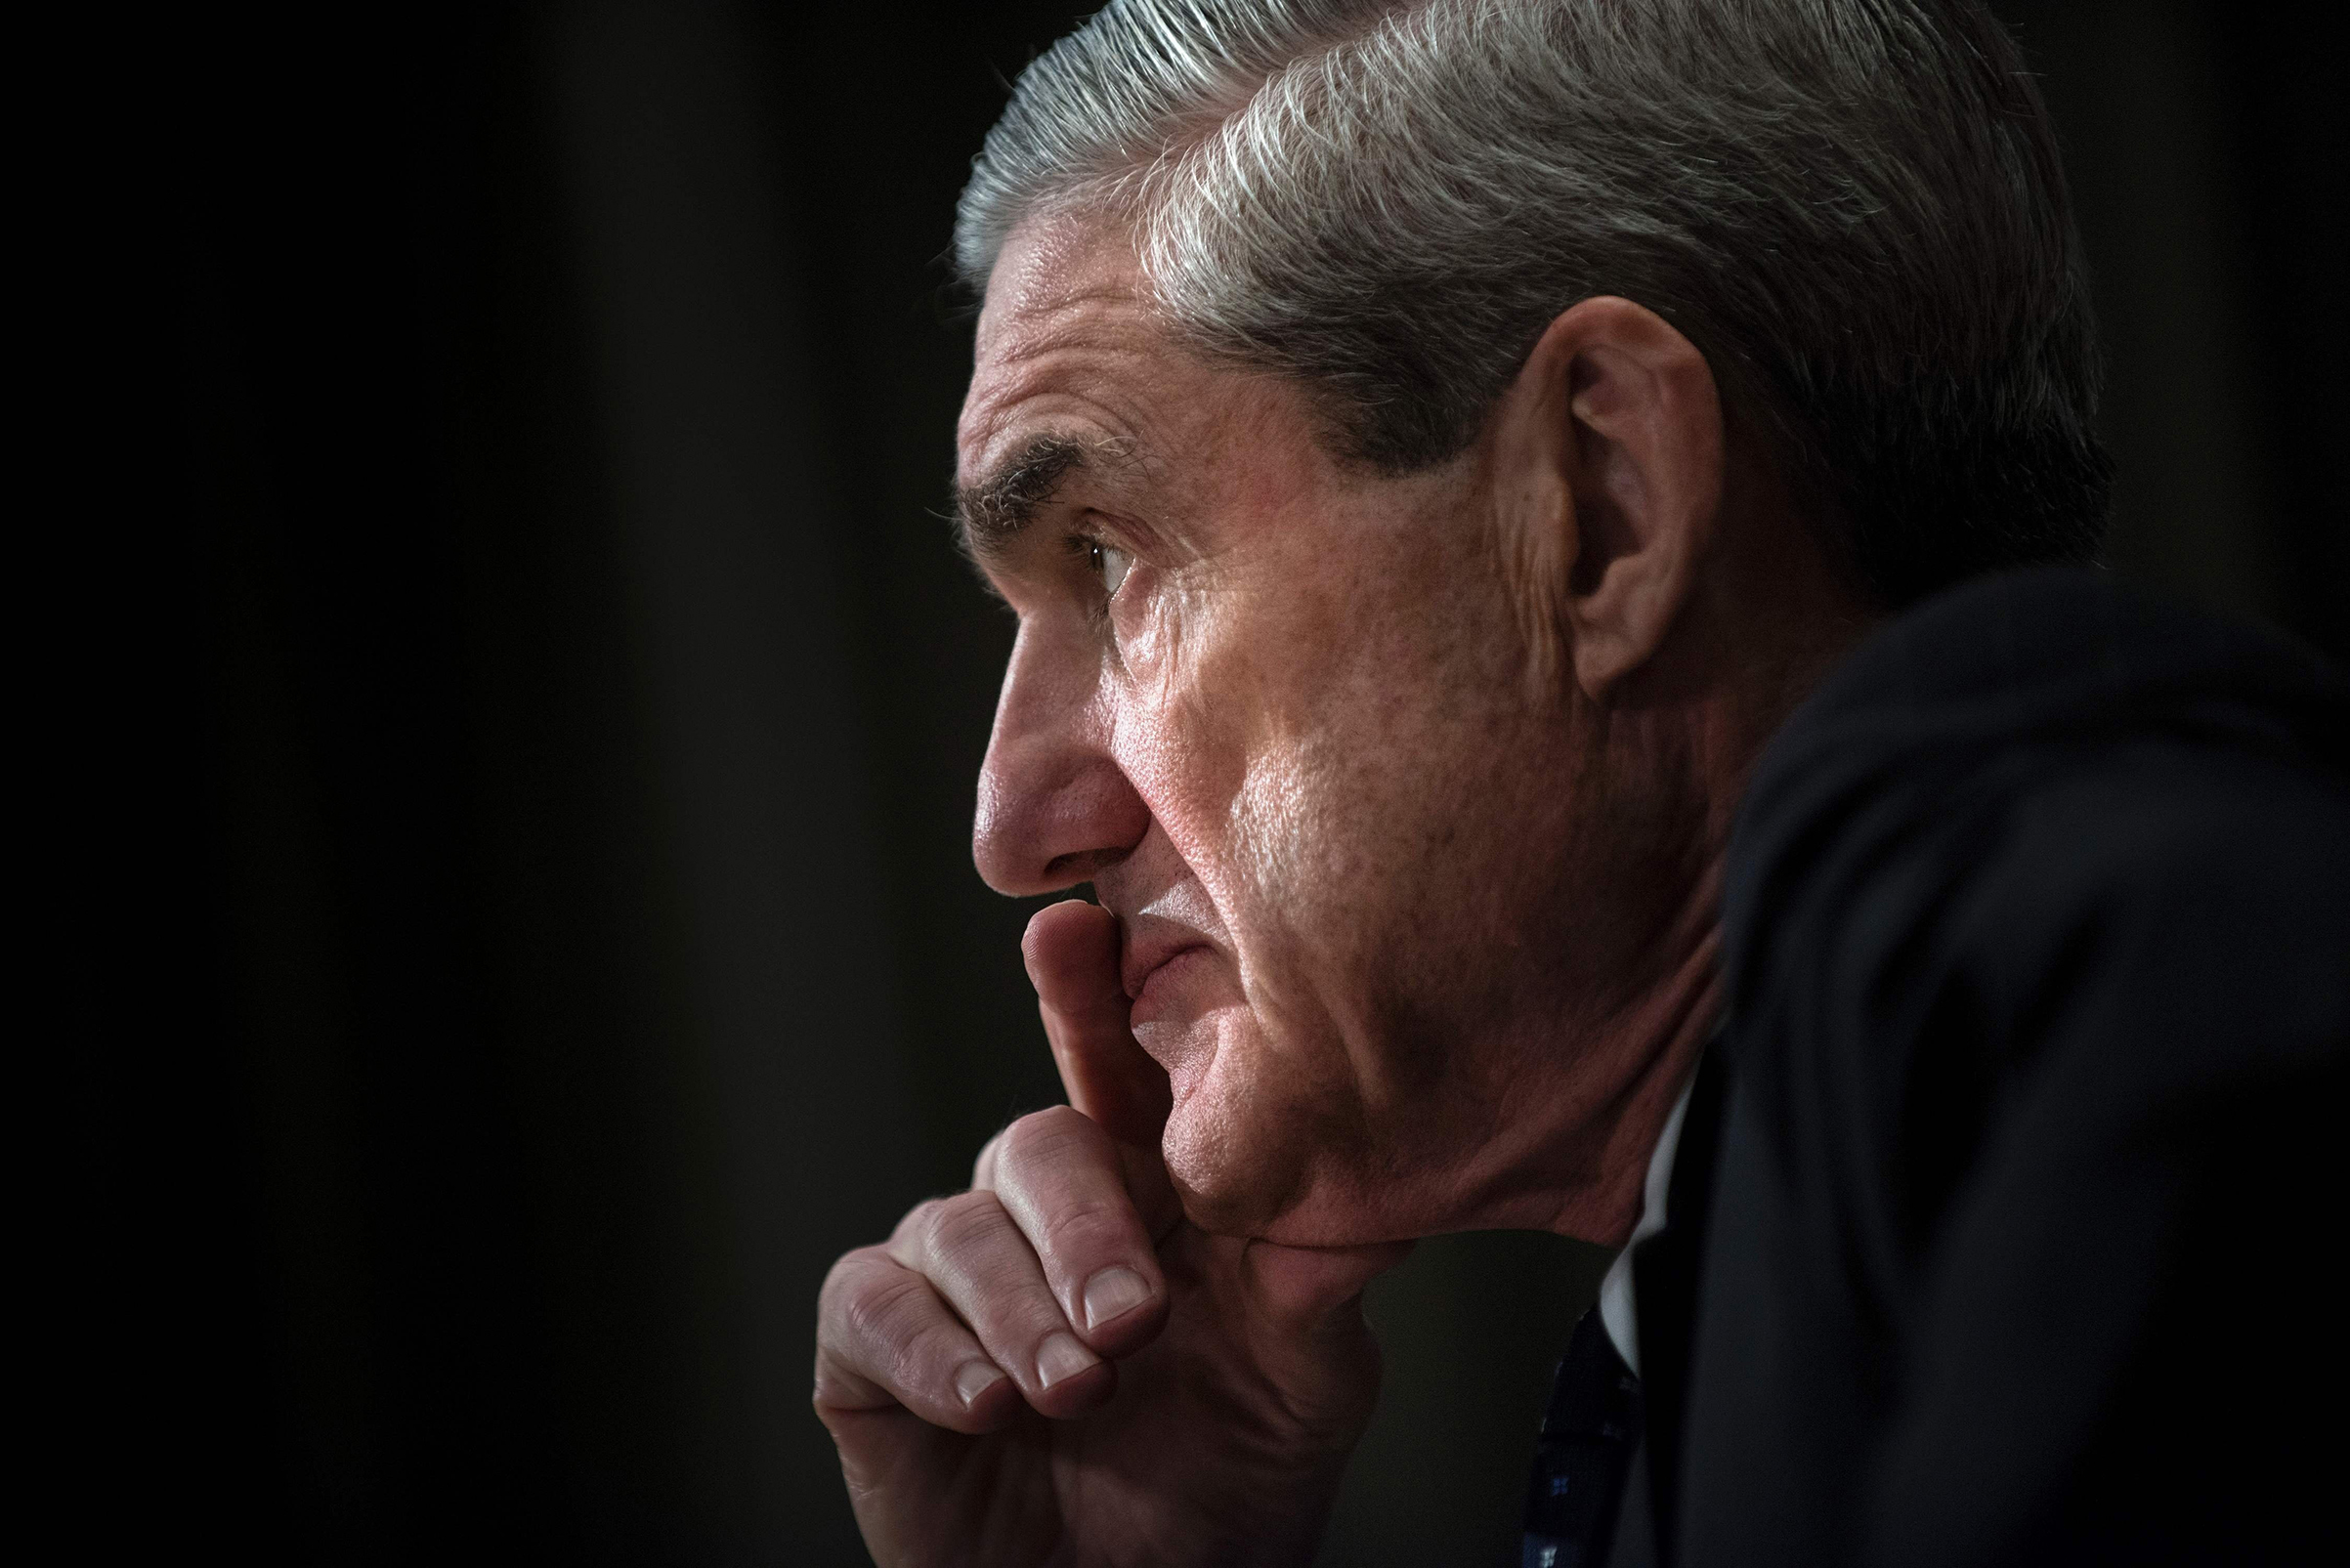 As special counsel, Robert Mueller has wide latitude, and a high-stakes responsibility, to investigate the White House.